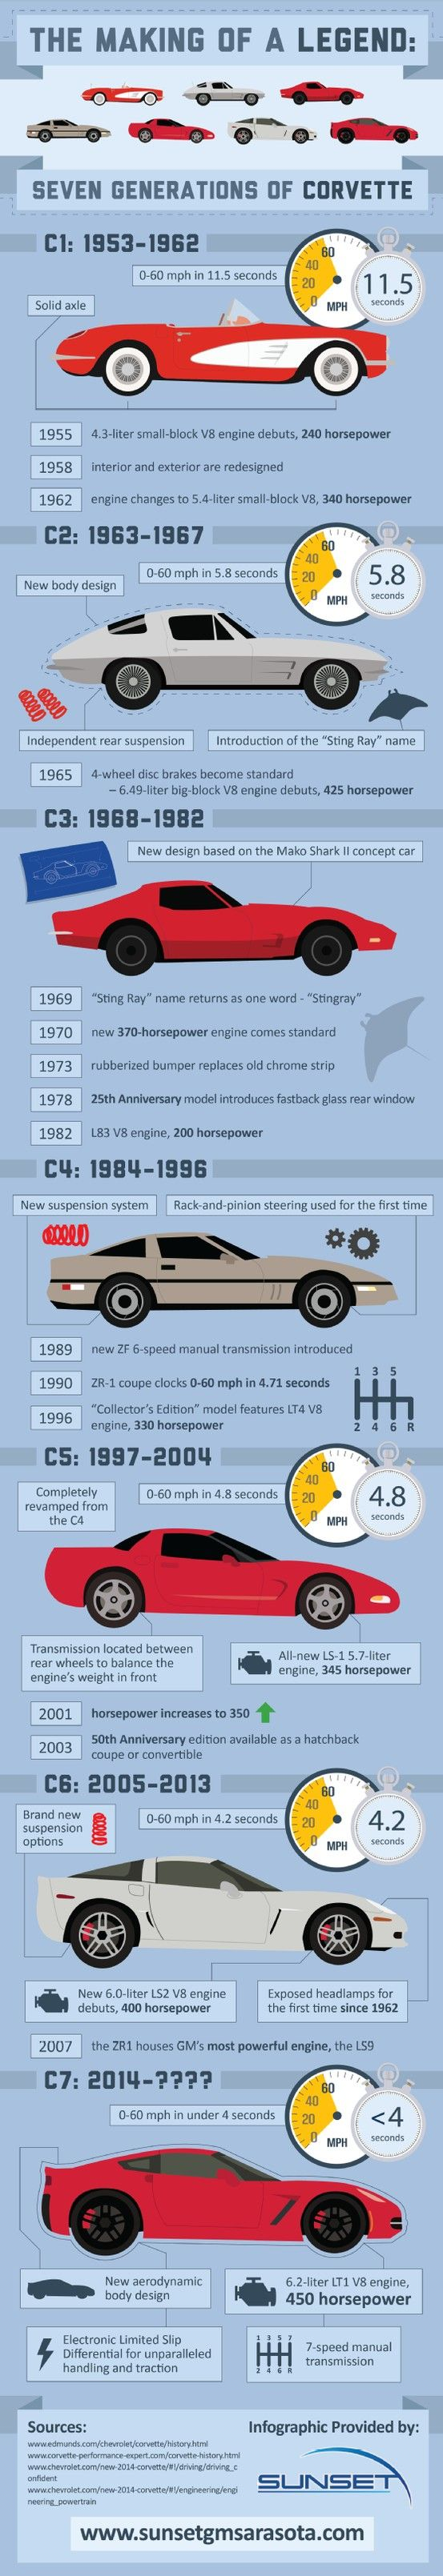 """The """"Sting Ray"""" name was introduced with the second generation Corvette, the C2, which was produced from 1963-1967.  It was changed to """"Stingray"""" in 1969. See how Corvette has changed over time in this infographic from a car dealership in Sarasota."""